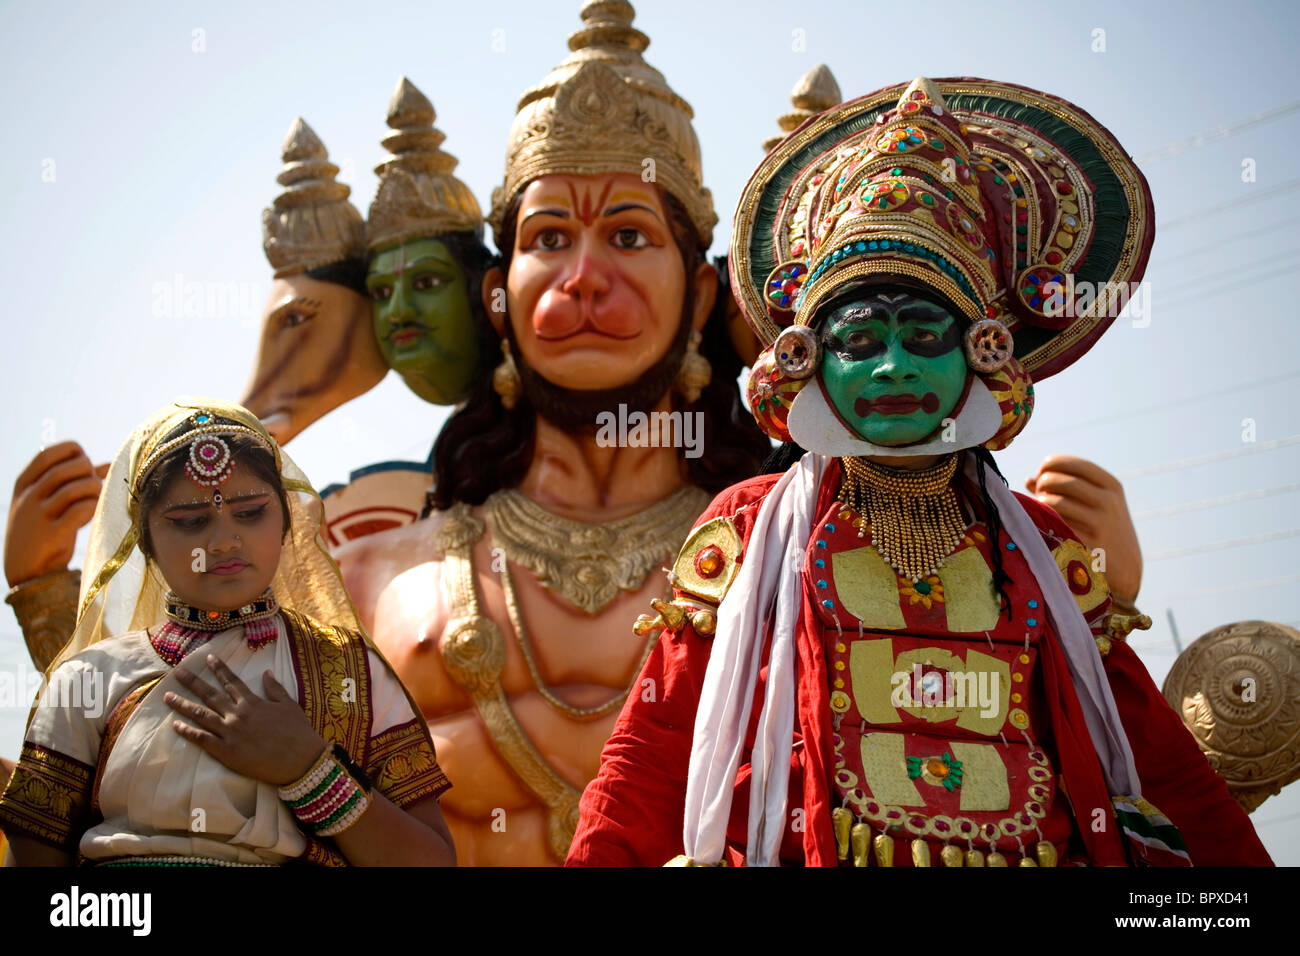 Hindu God Hanuman or Monkey Gods at Kumbh Mela festival Haridwar, Uttarakhand, India 2010. - Stock Image